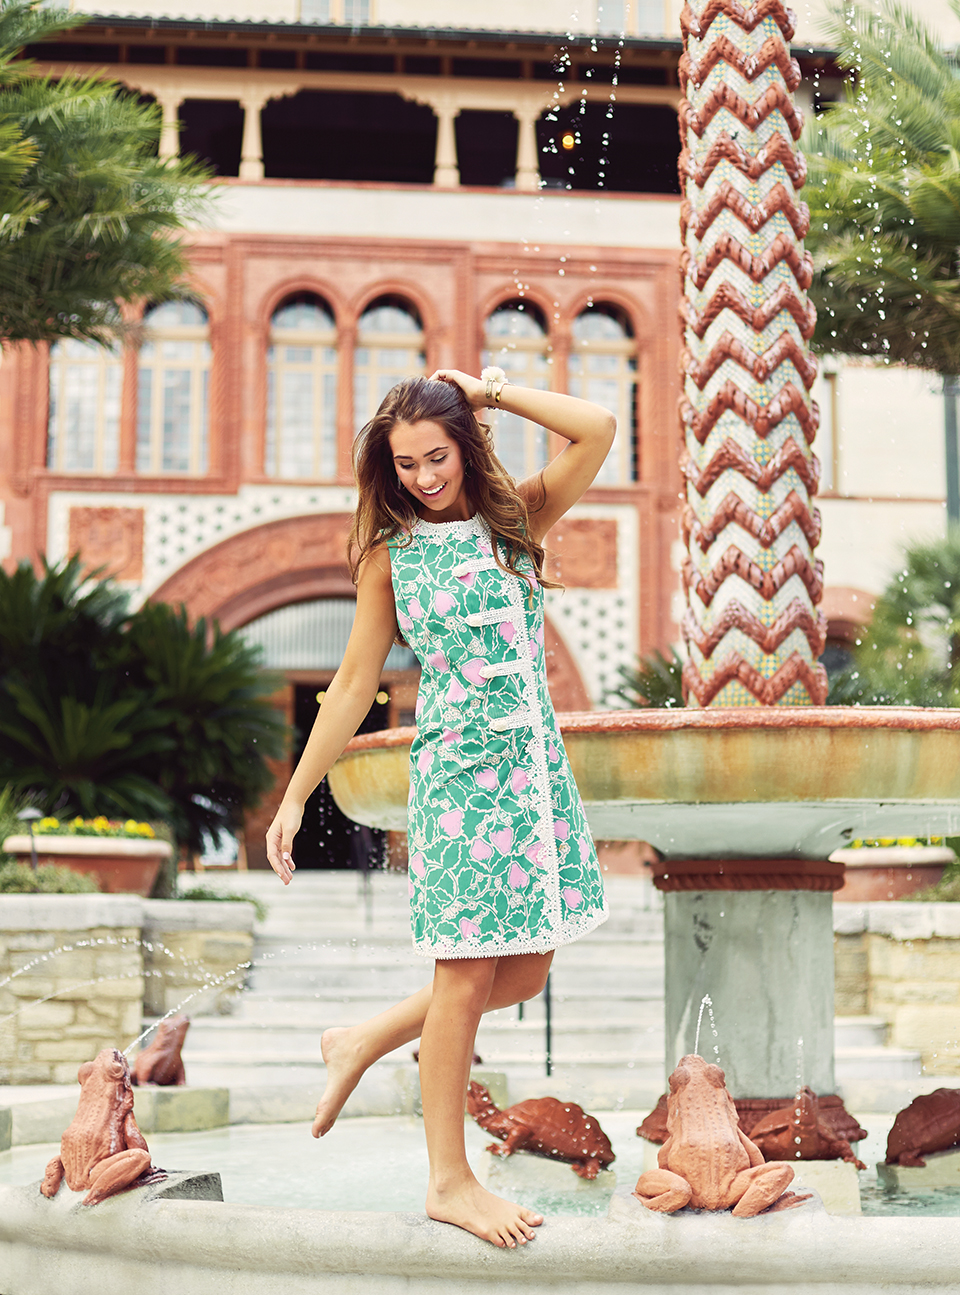 Model Eve Gay wear a vintage green and pink Lilly dress with white lace details. The photo is taken at Flager College. Eve stands, almost like a flamingo, on a fountain's ledge and runs a finger through her hair. The fountain features turtles and frogs spouting water.